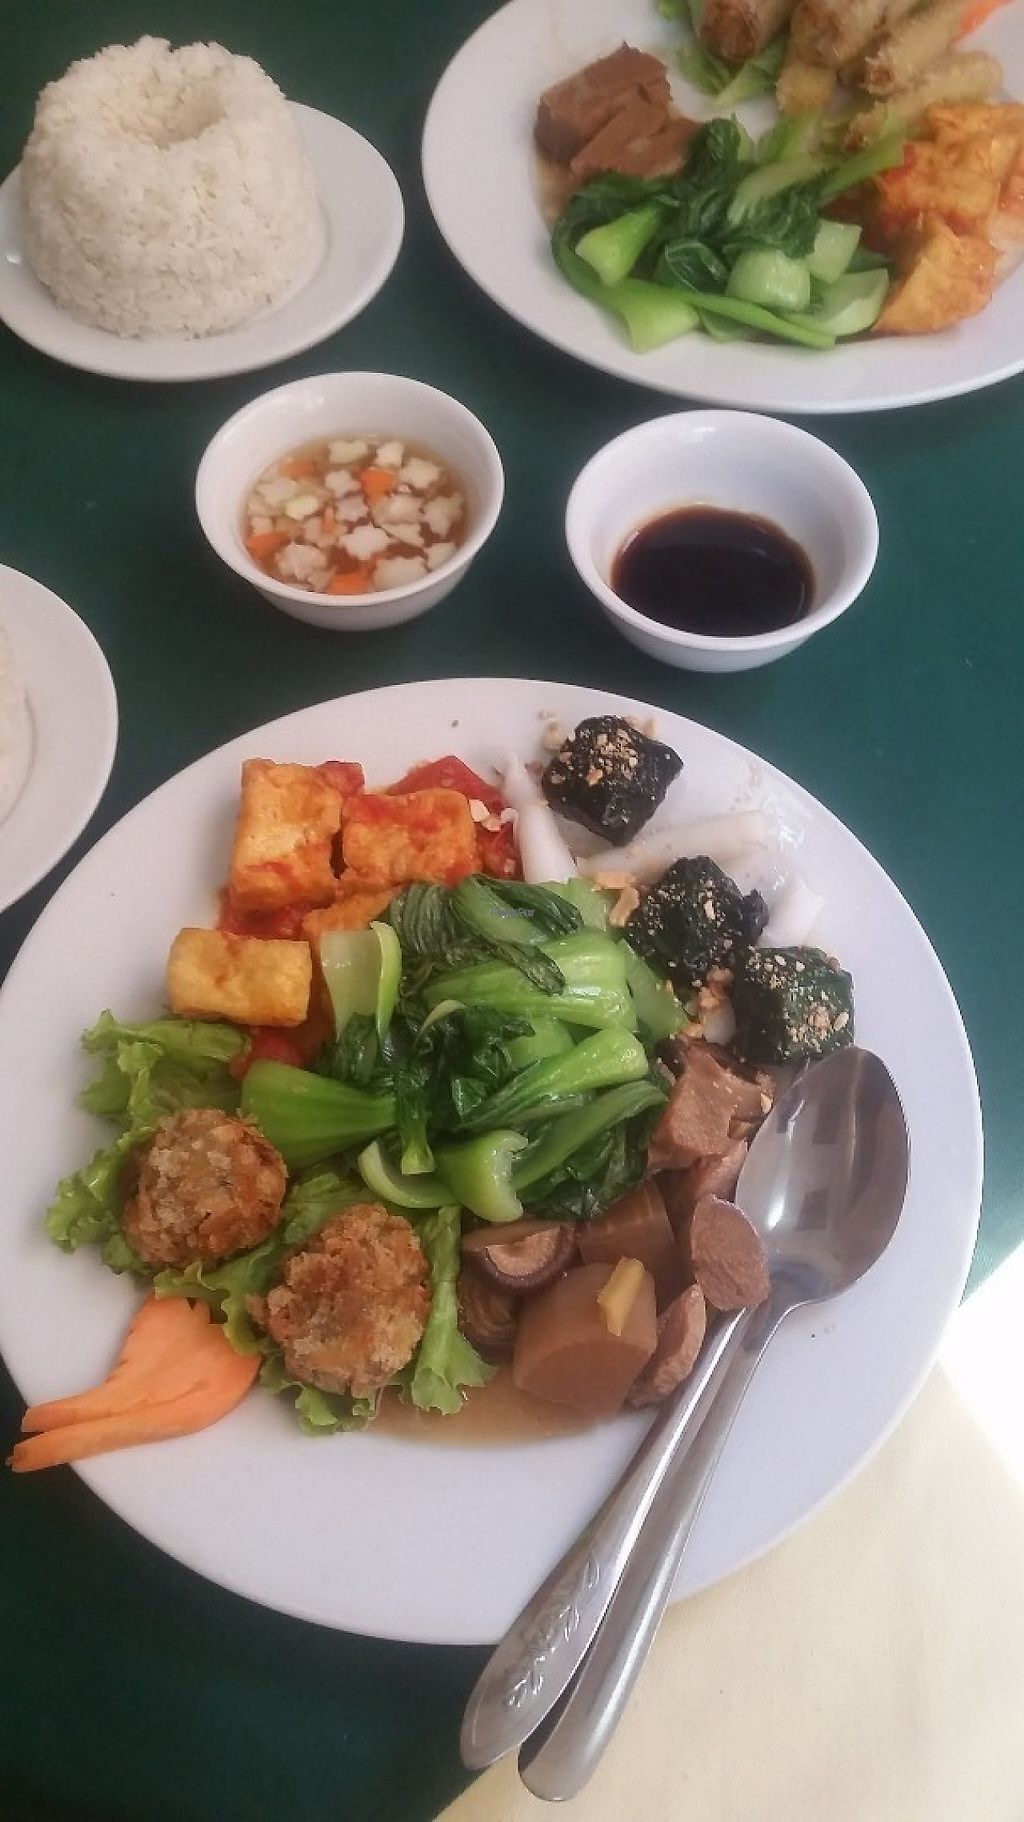 """Photo of Nang Tam  by <a href=""""/members/profile/Without_Cruelty_Blog"""">Without_Cruelty_Blog</a> <br/>Set menu 2B  <br/> December 9, 2016  - <a href='/contact/abuse/image/3353/198602'>Report</a>"""